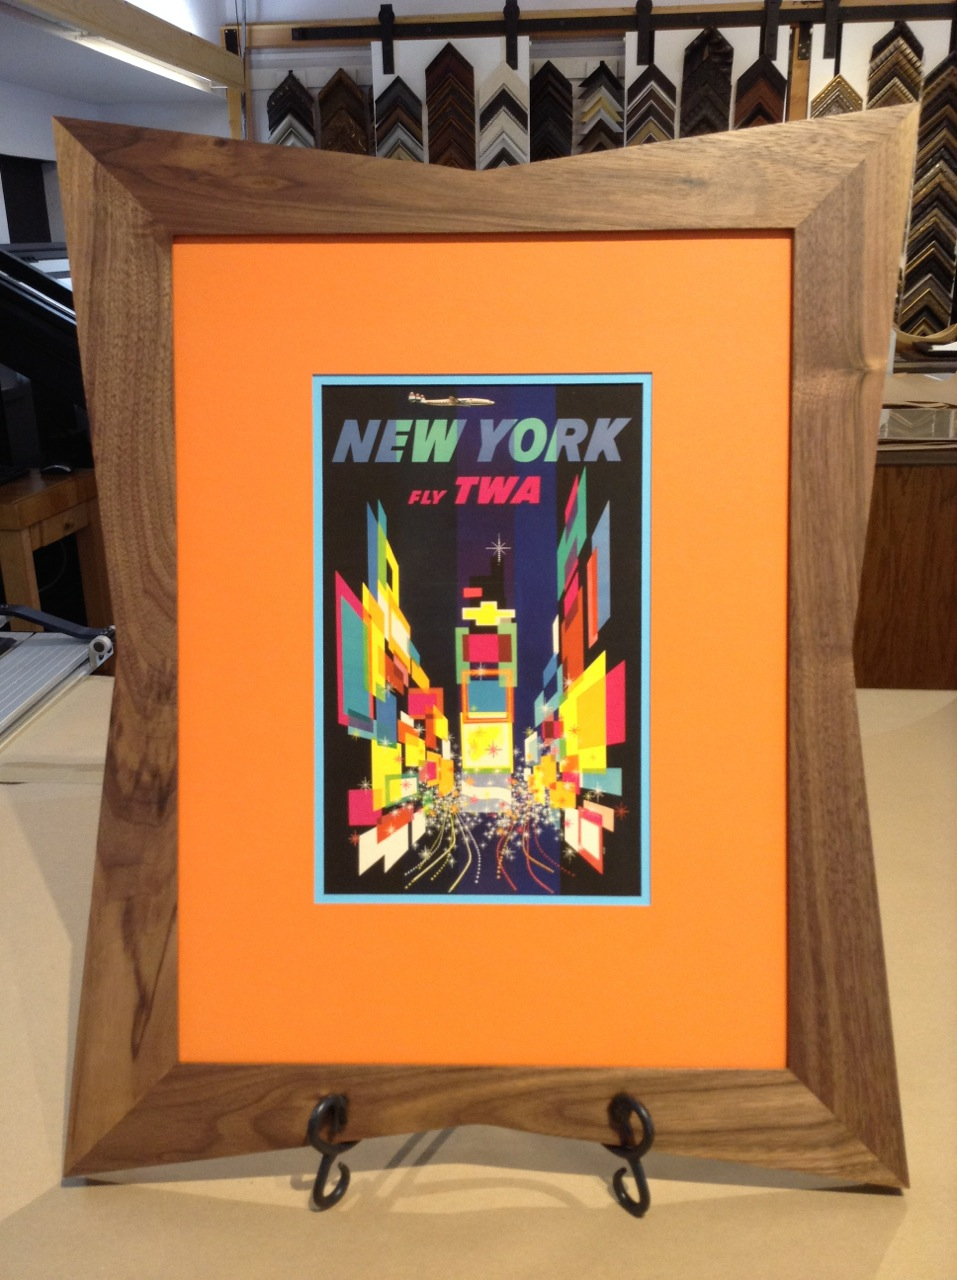 Colorful vintage TWA advertisement framed in mid-century modern wood frame and orange matting